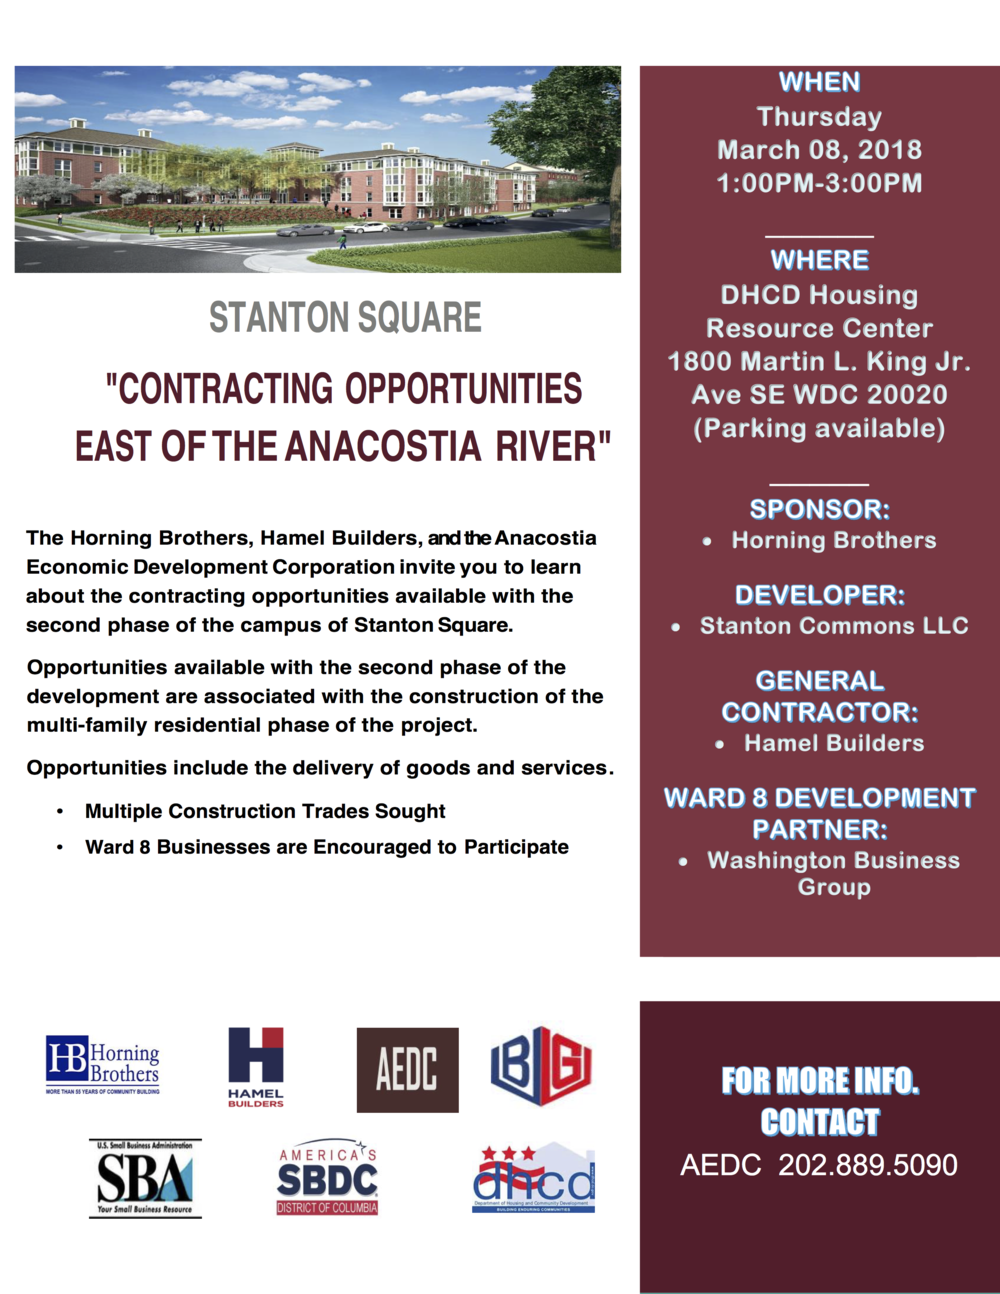 FINAL Flyer  - Conracting Opportunities East of the Anacostia River.png